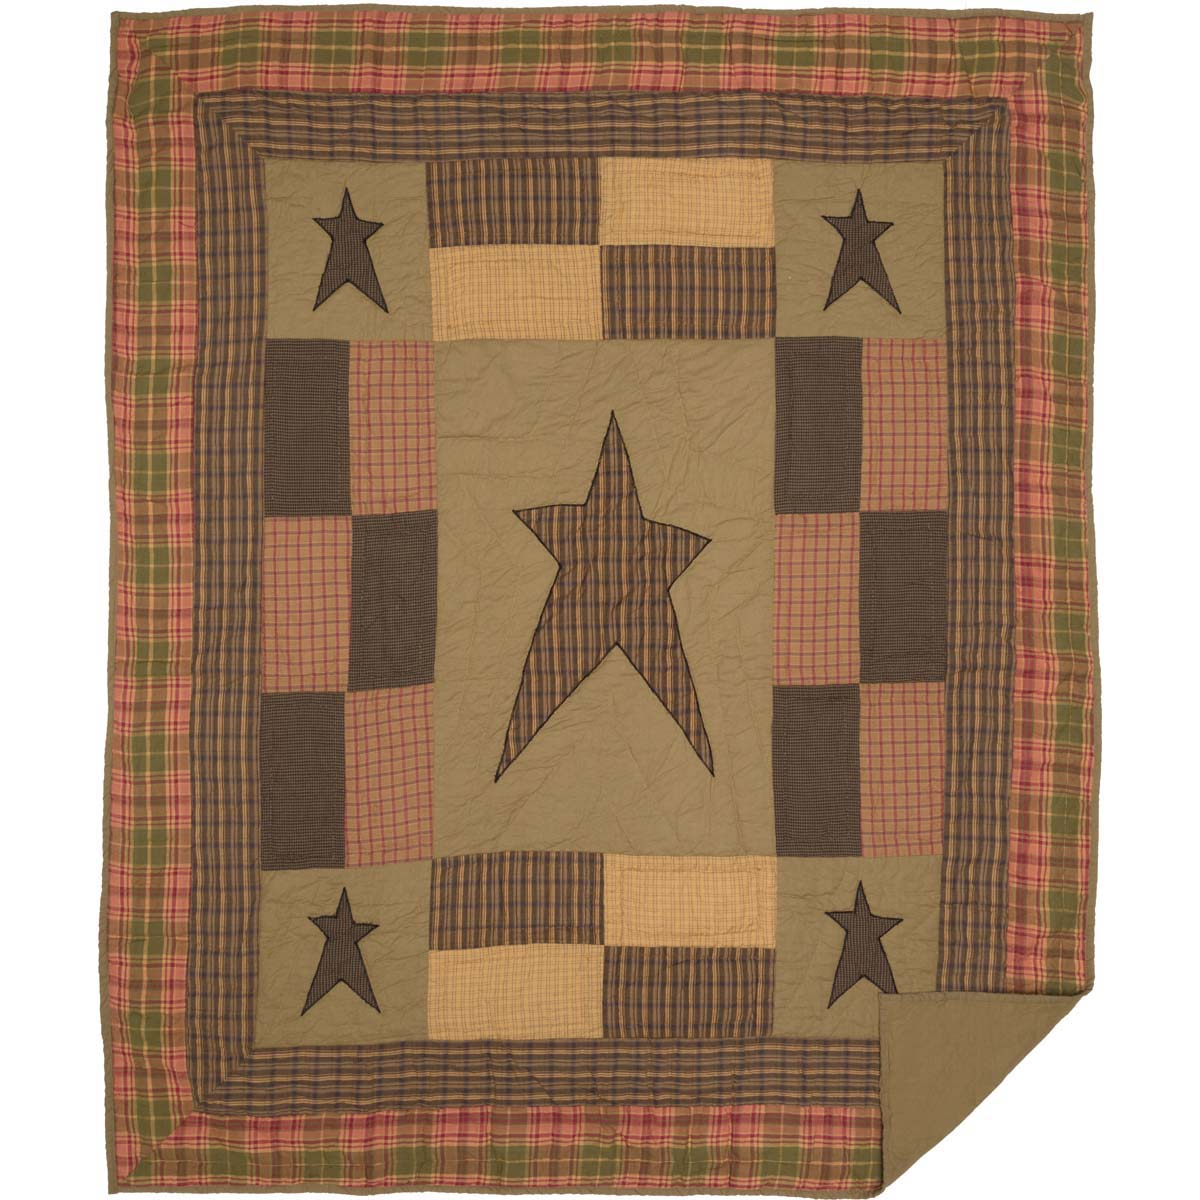 Dark Khaki Tan Primitive Decor Sutton Rod Pocket Cotton Pre-Washed Appliqued Star Throw